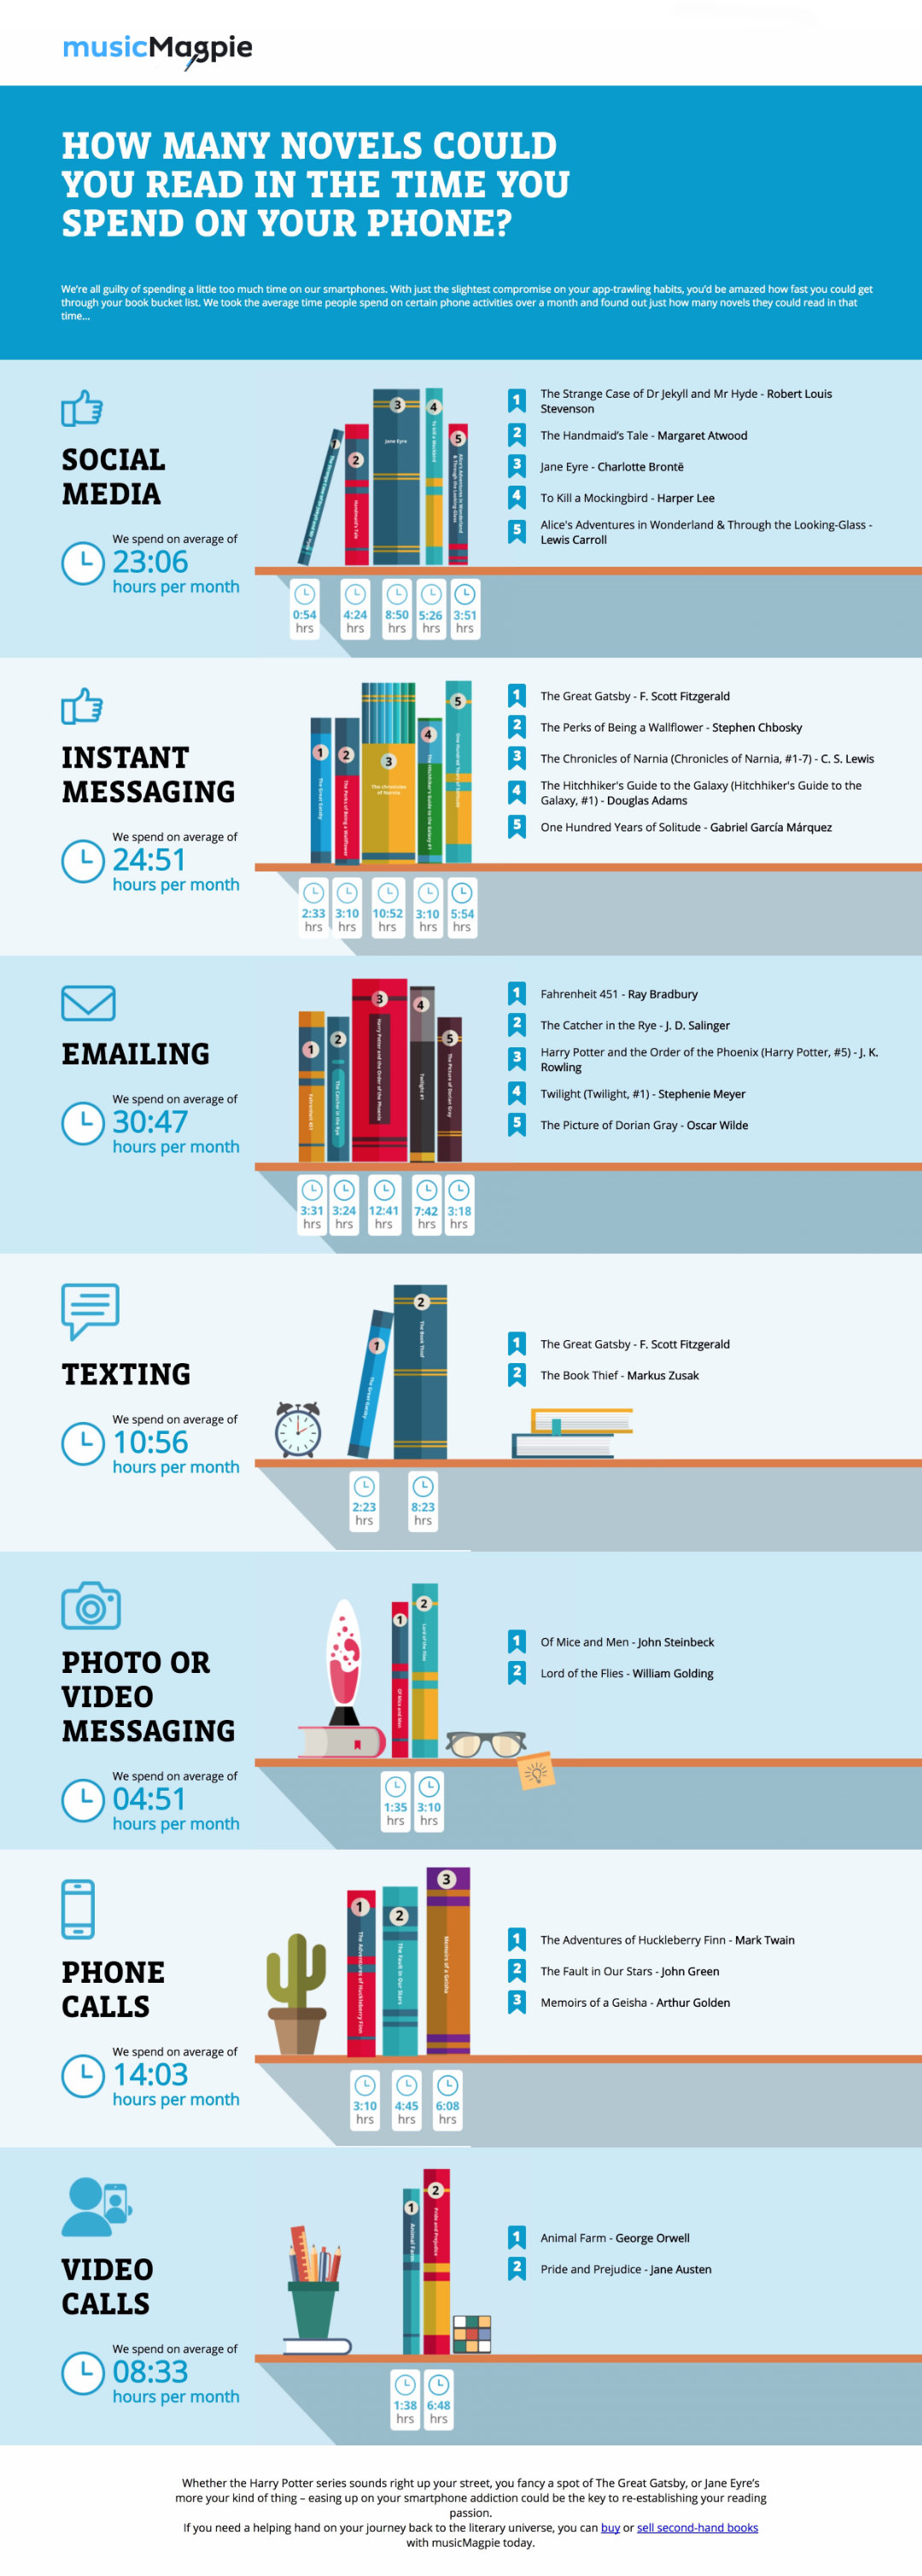 How many books could you read in the time you spend on your phone #infographic